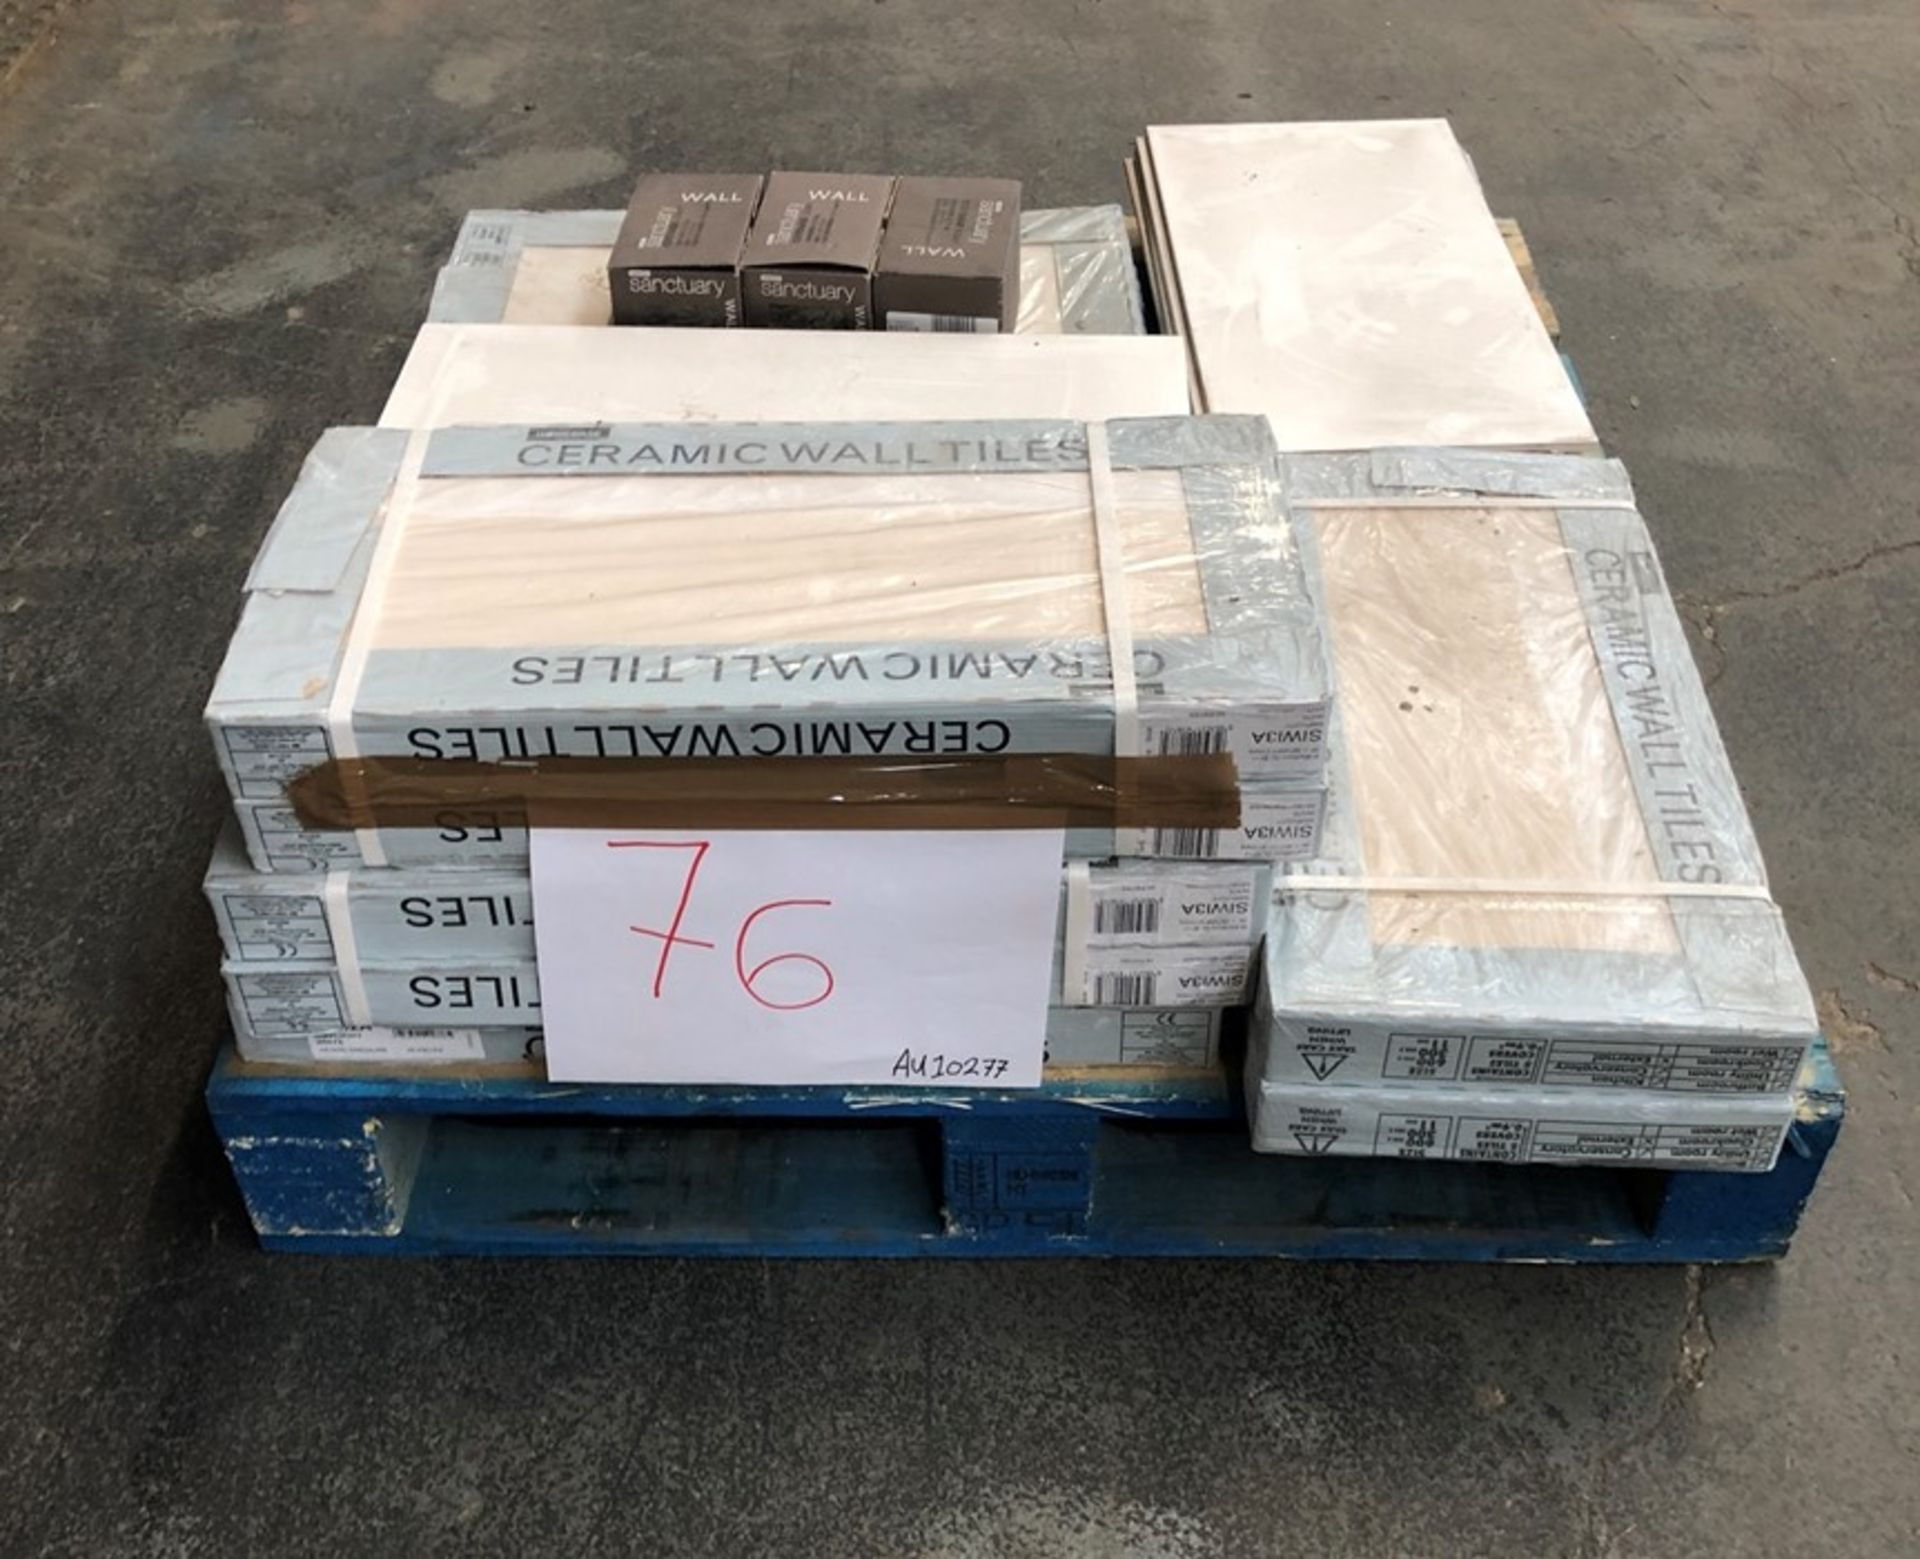 Lotto 54 - 1 LOT TO CONTAIN ASSORTED CERAMIC WALL TILES (PUBLIC VIEWING AVAILABLE)